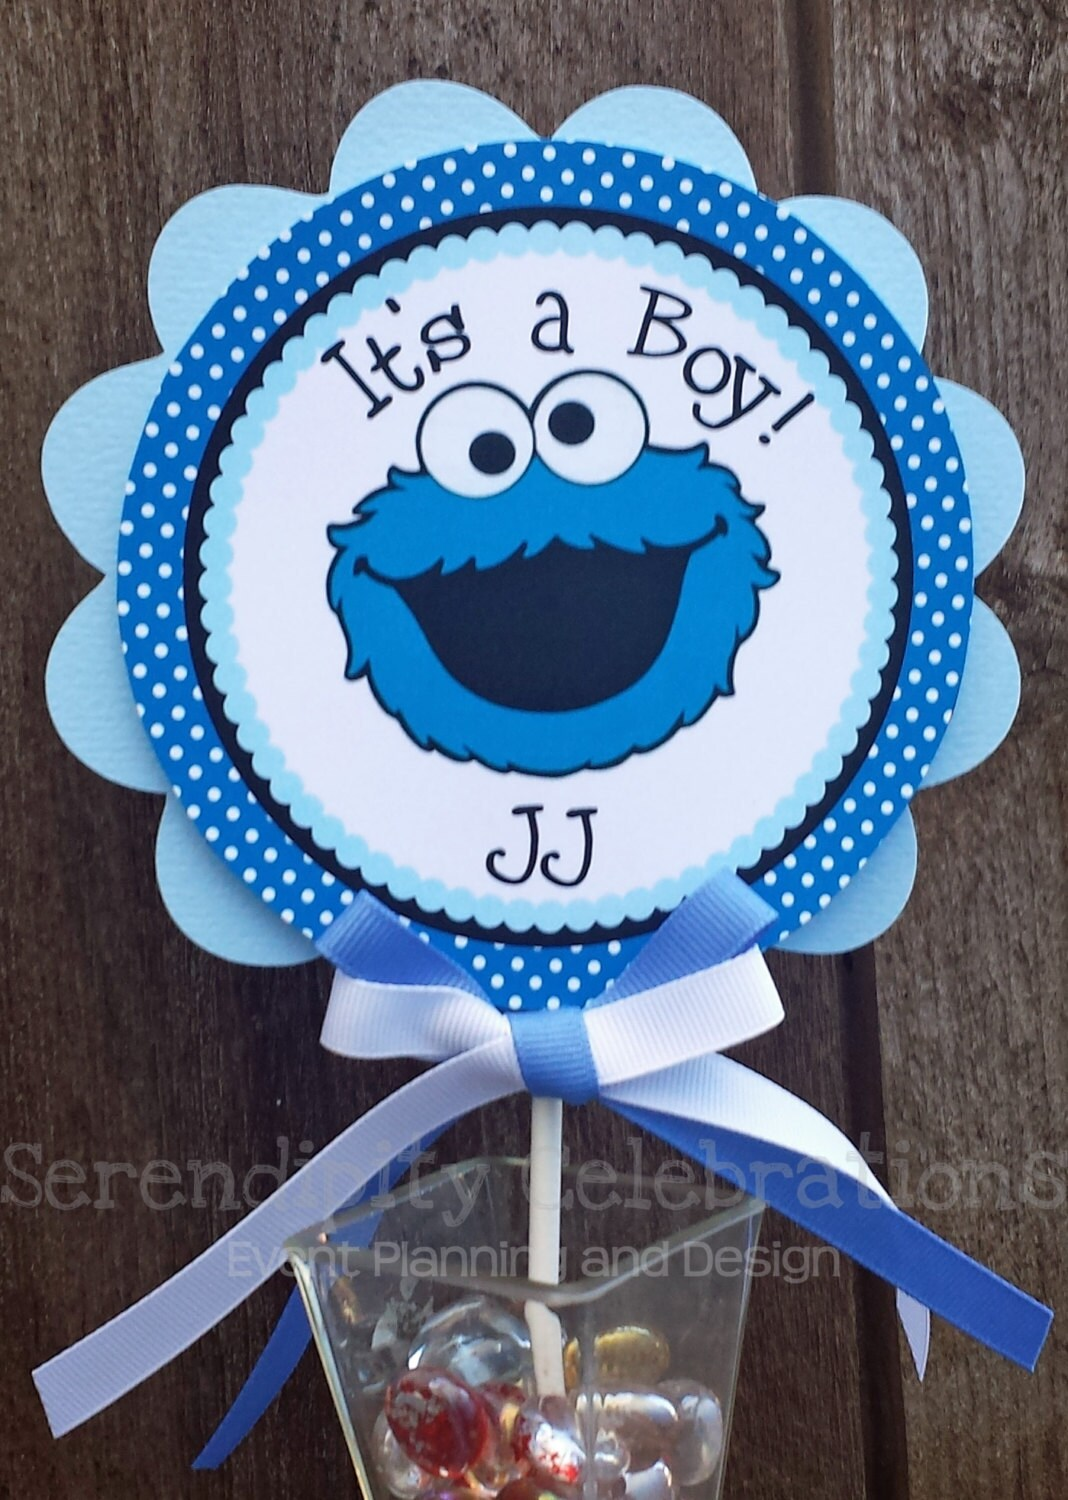 Personalized Cake Topper Blue Monster-small centerpiece